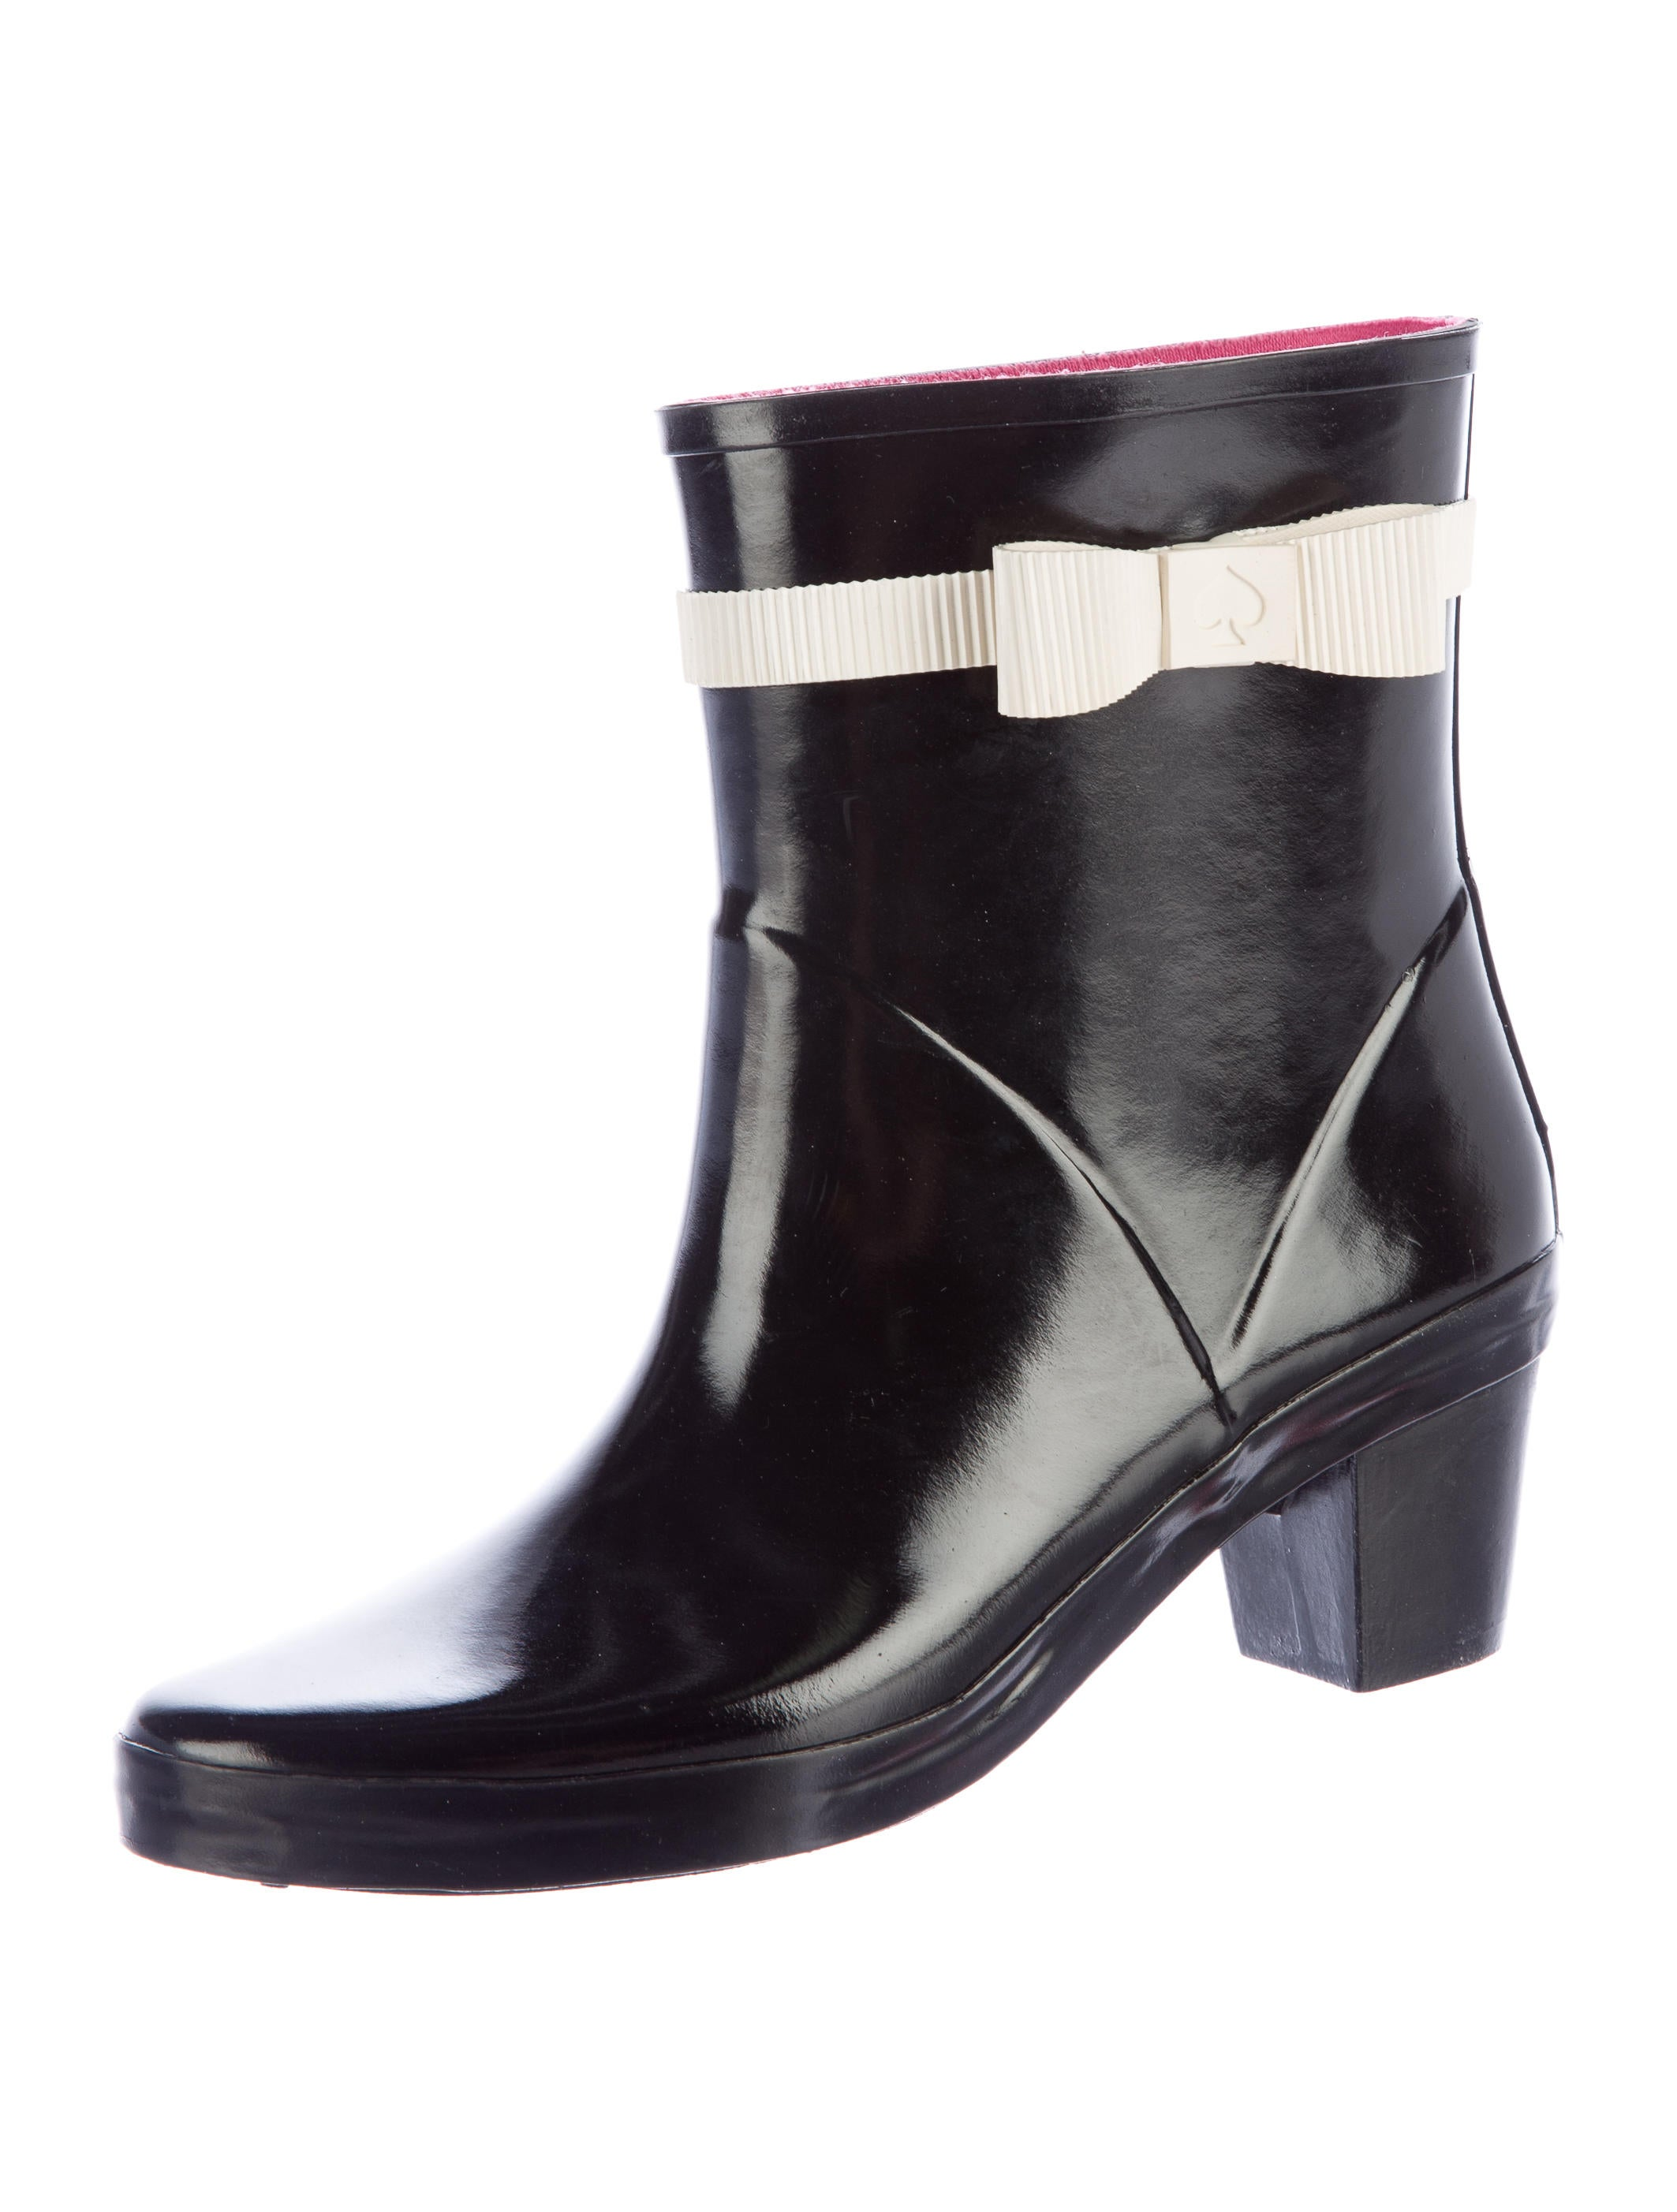 Buy low price, high quality women ankle rubber rain boots with worldwide shipping on distrib-wq9rfuqq.tk